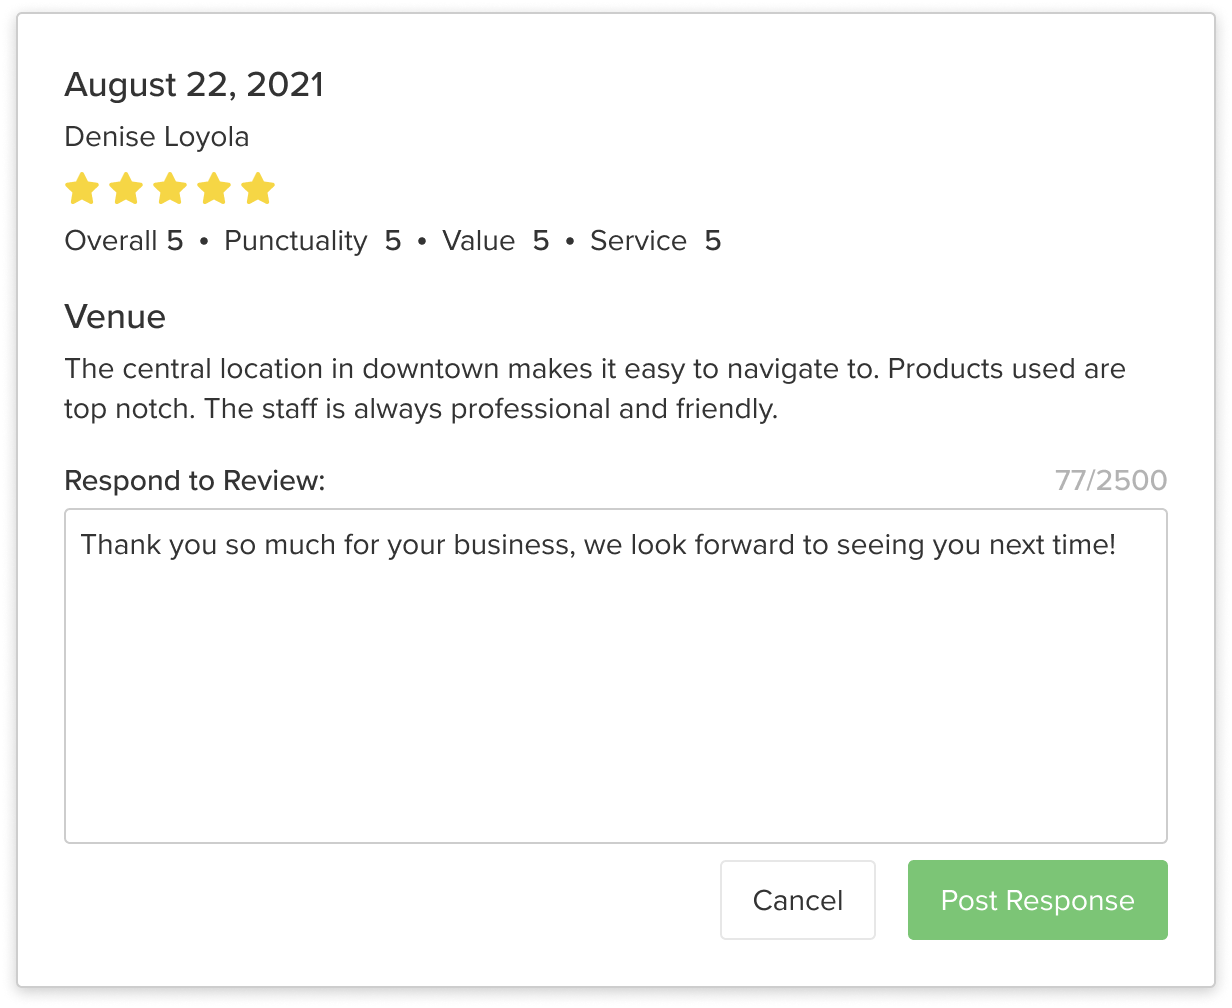 A business responds to a 5 star review left by a customer.